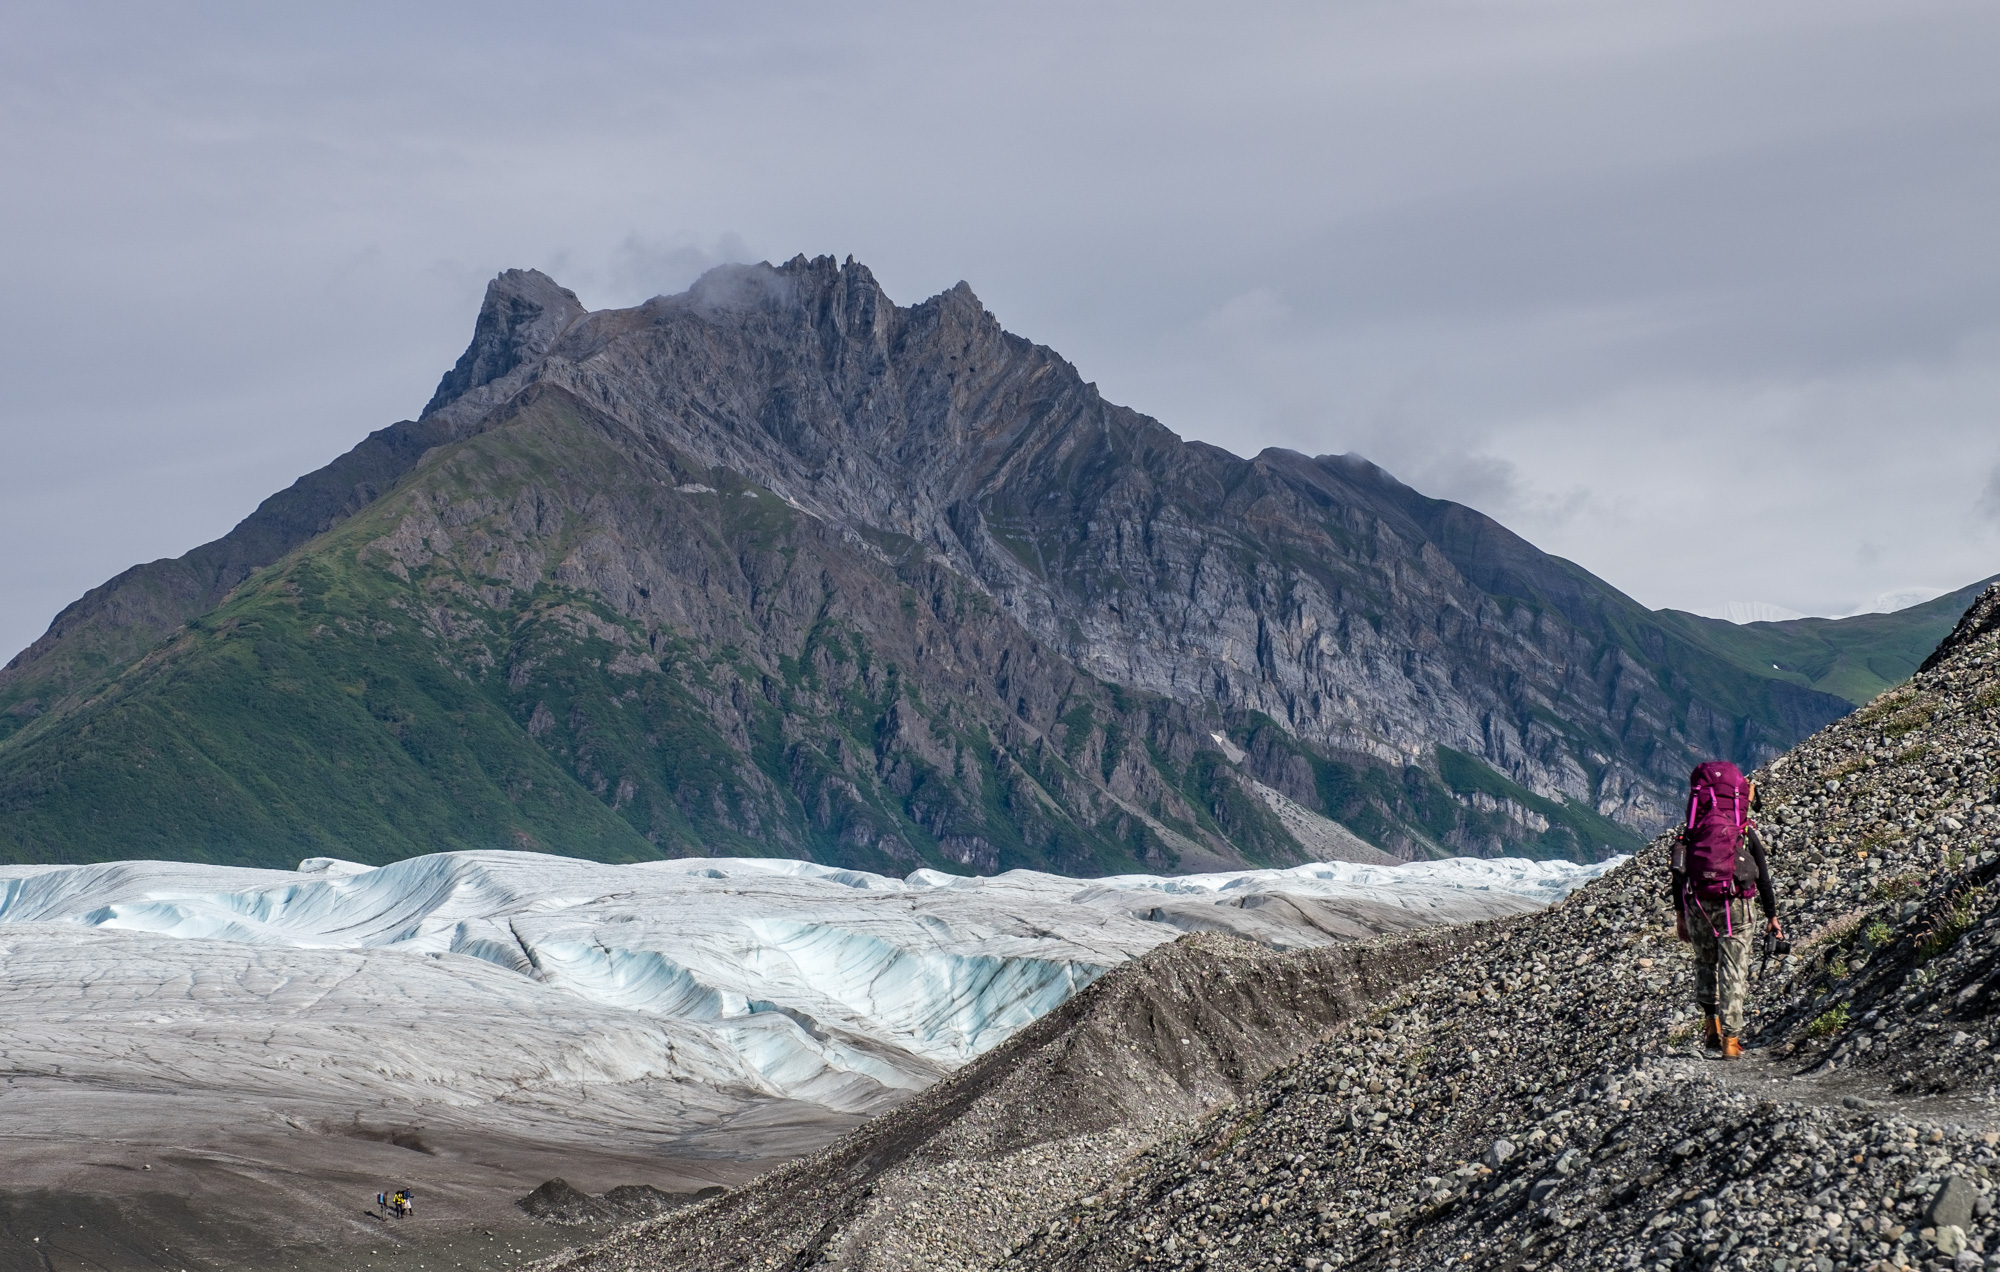 Our first views of the Kennicott glacier.